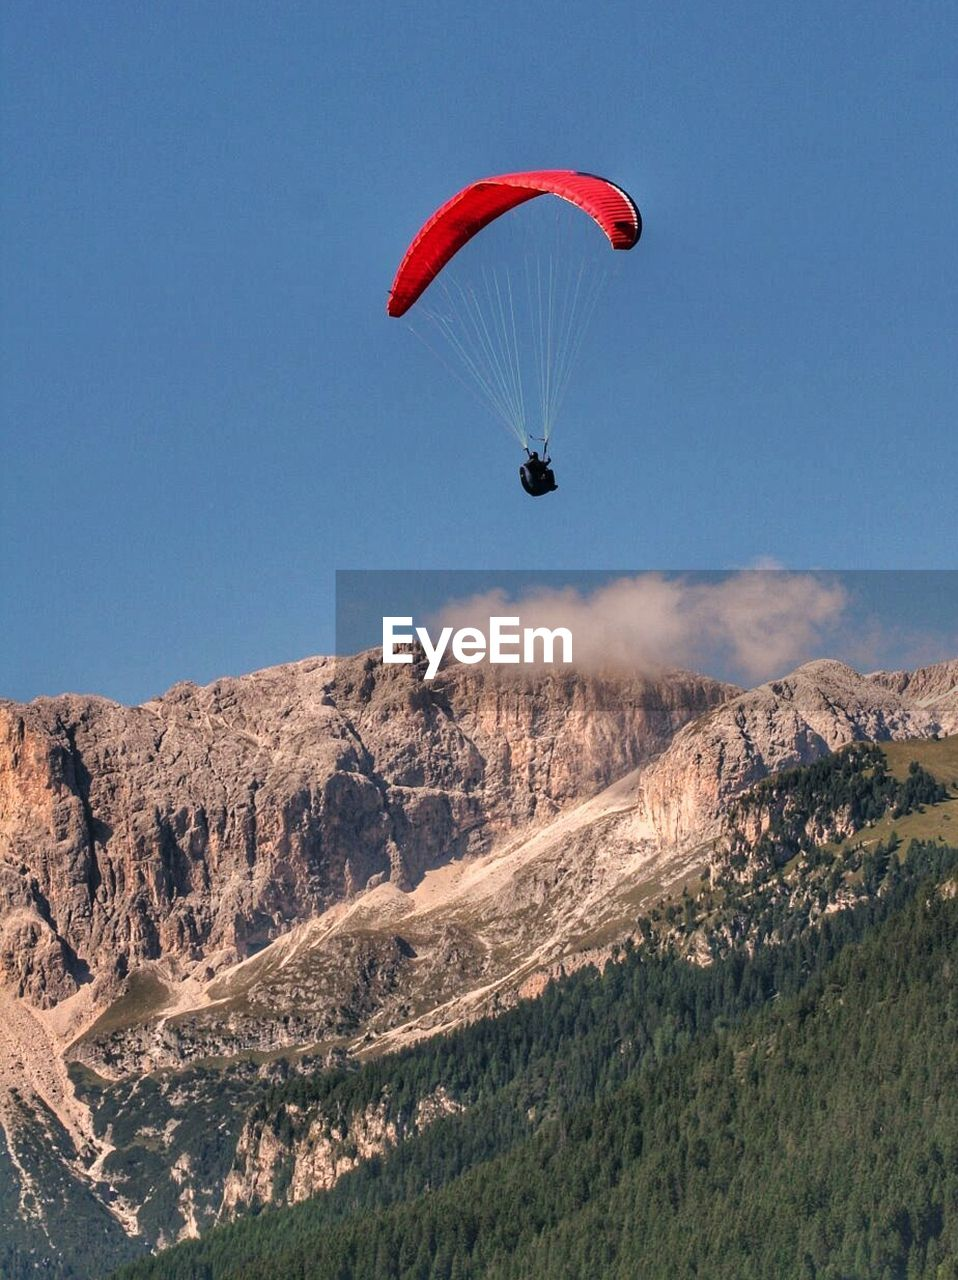 Person Paragliding Above Forest Trees And Mountains Against Sky